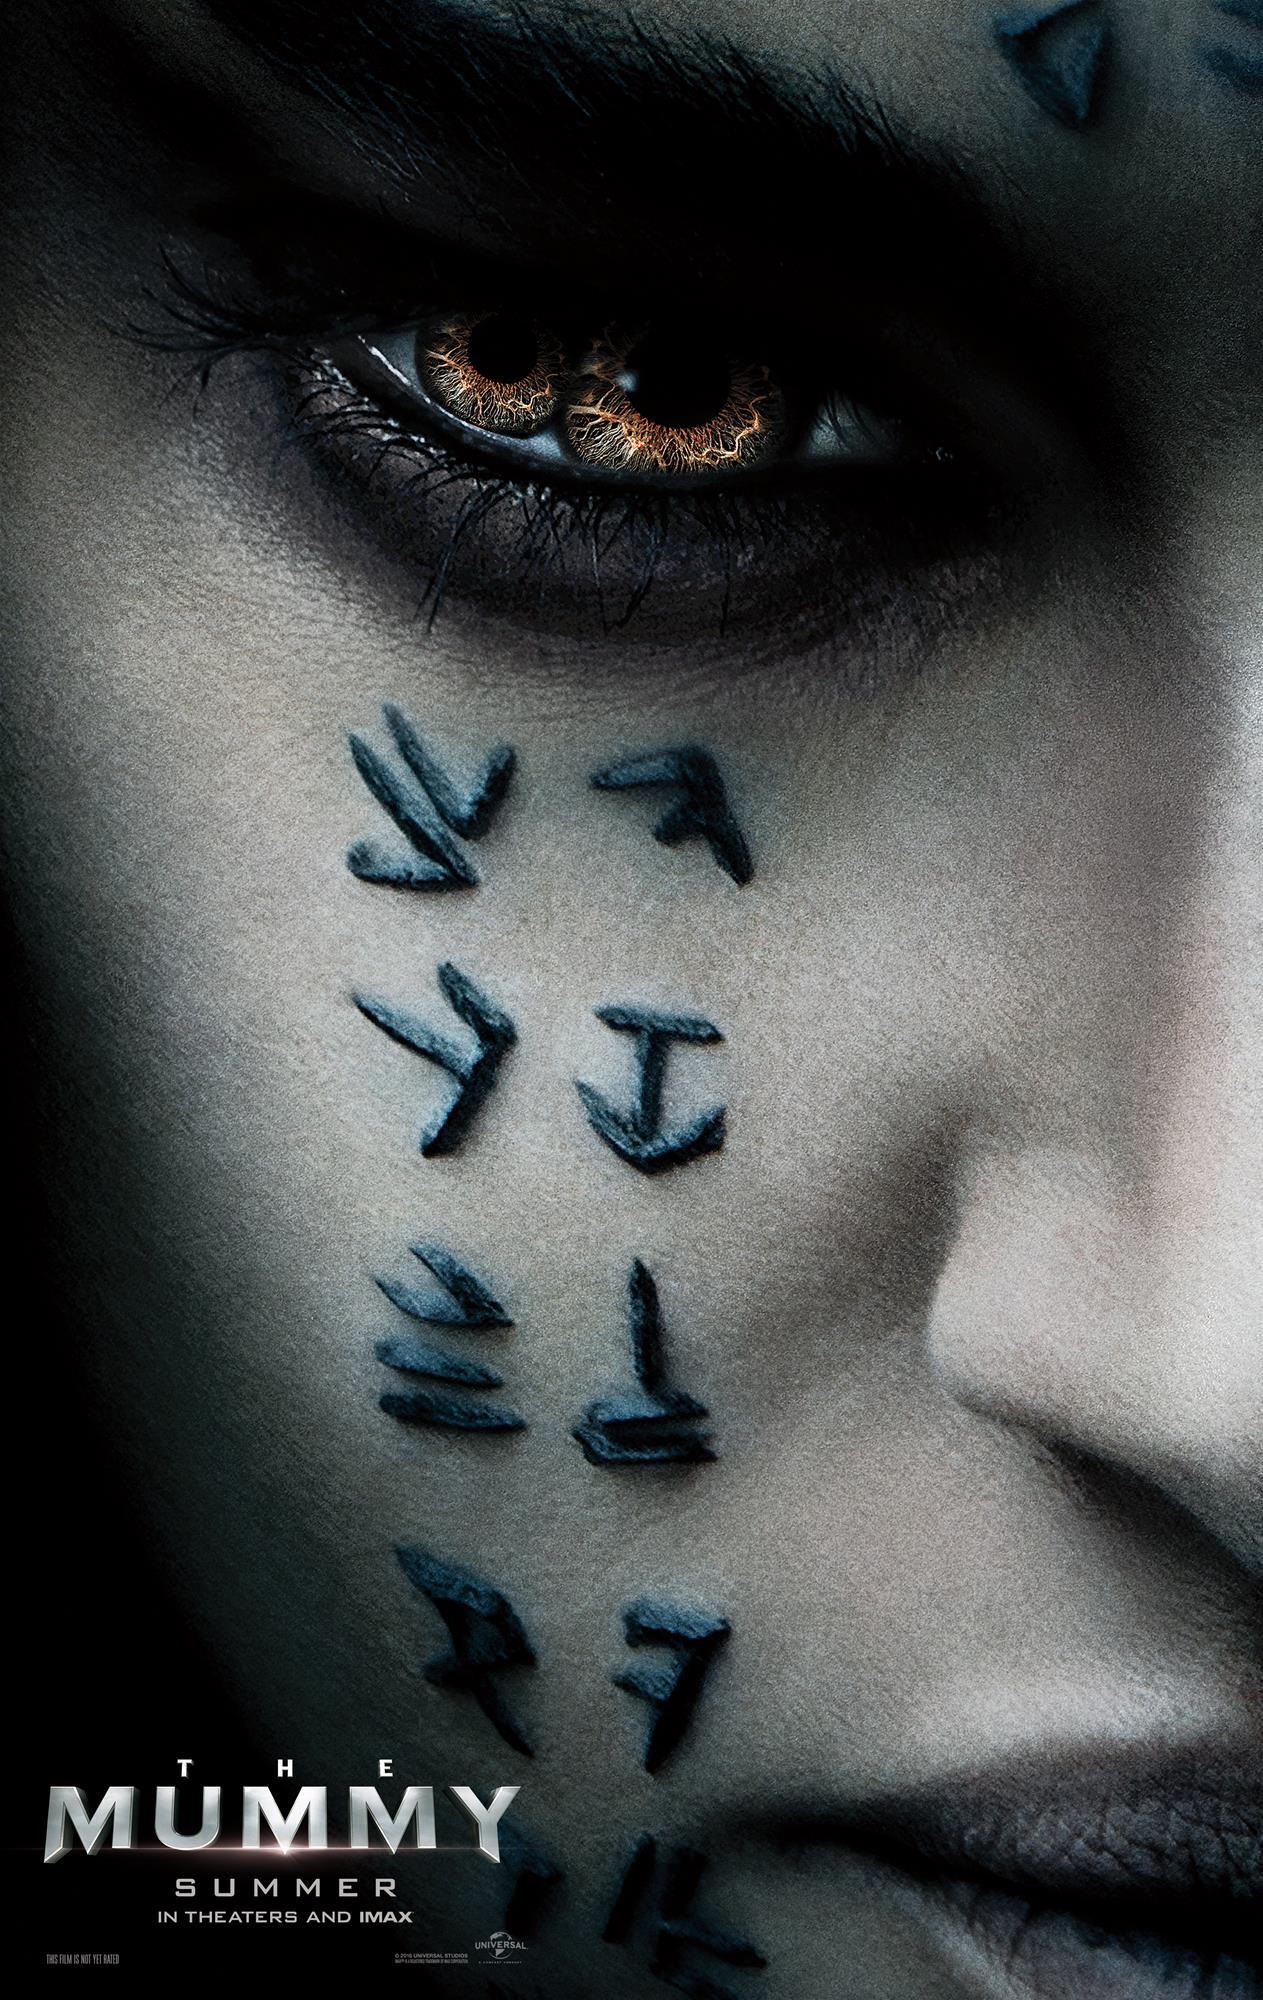 An Ancient Power Bursts Free In Eerie New Trailer For The Mummy